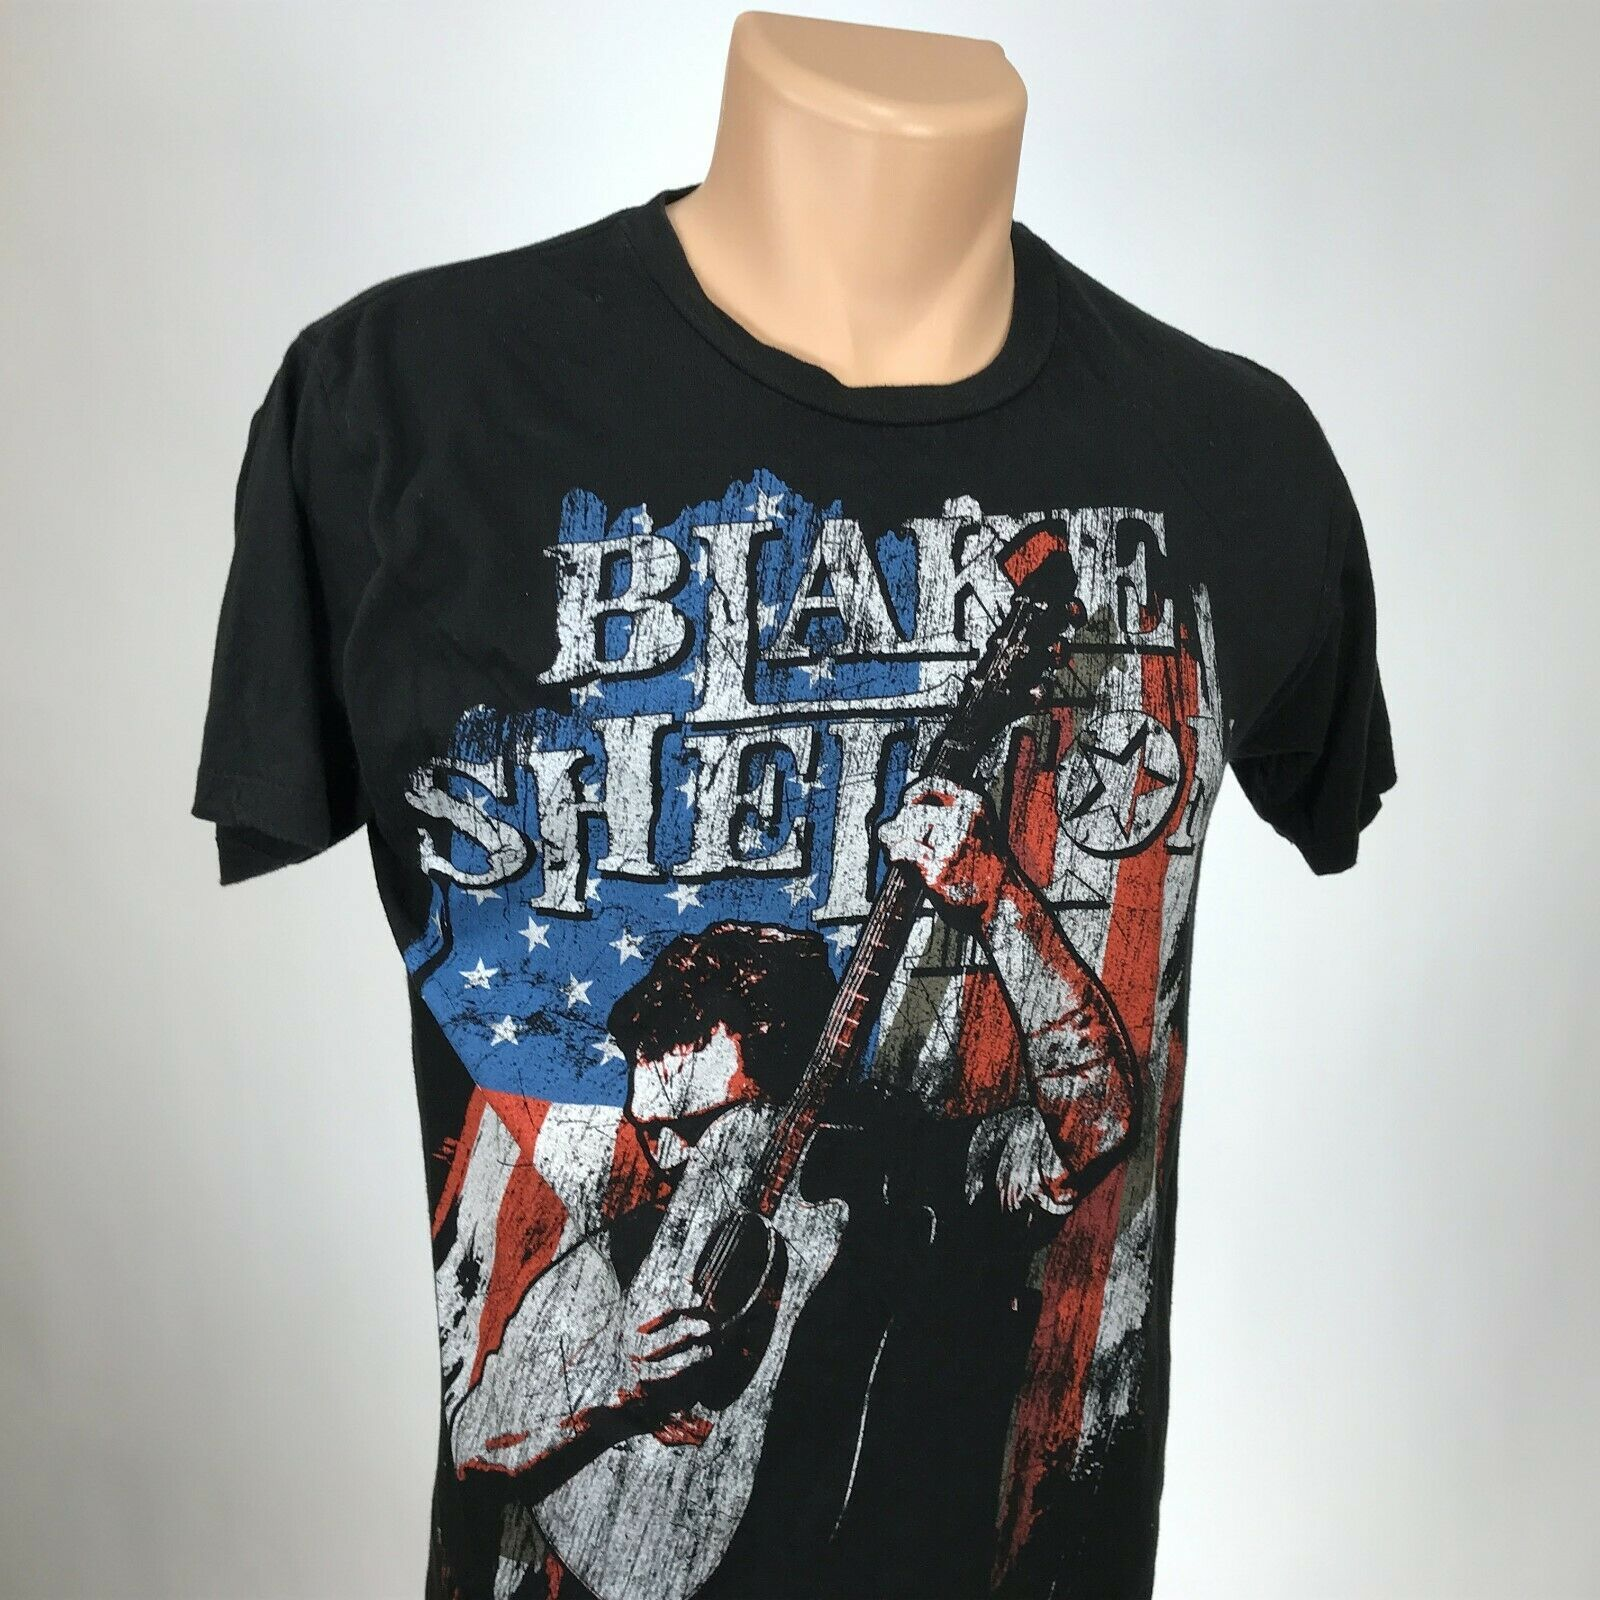 Primary image for Blake Shelton 2012 Concert T Shirt Short Sleeve